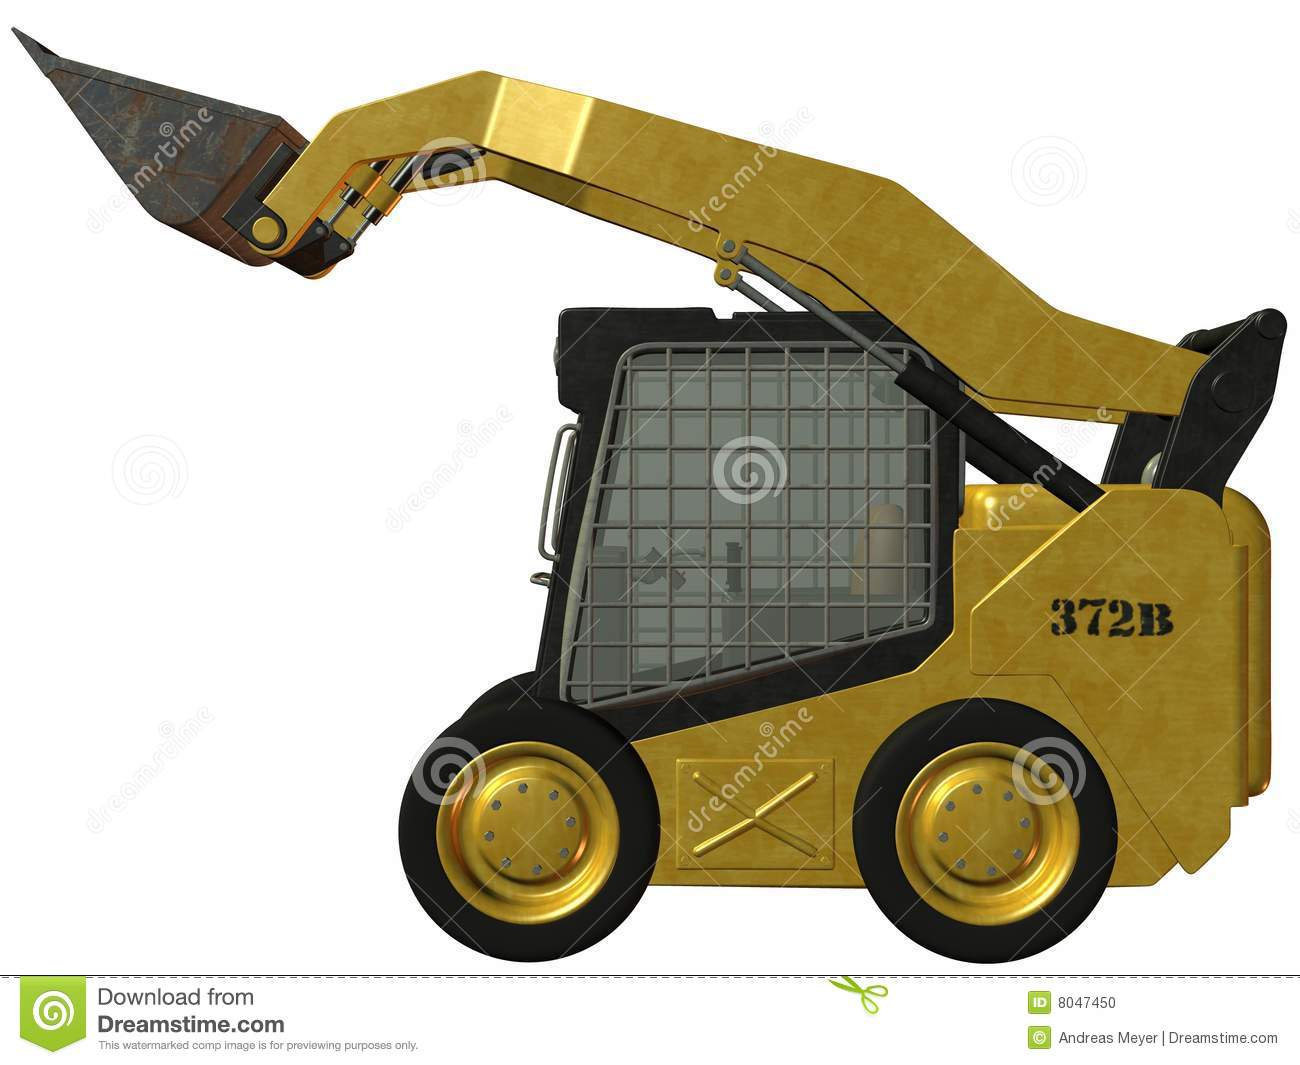 3d render of an skid steer loader